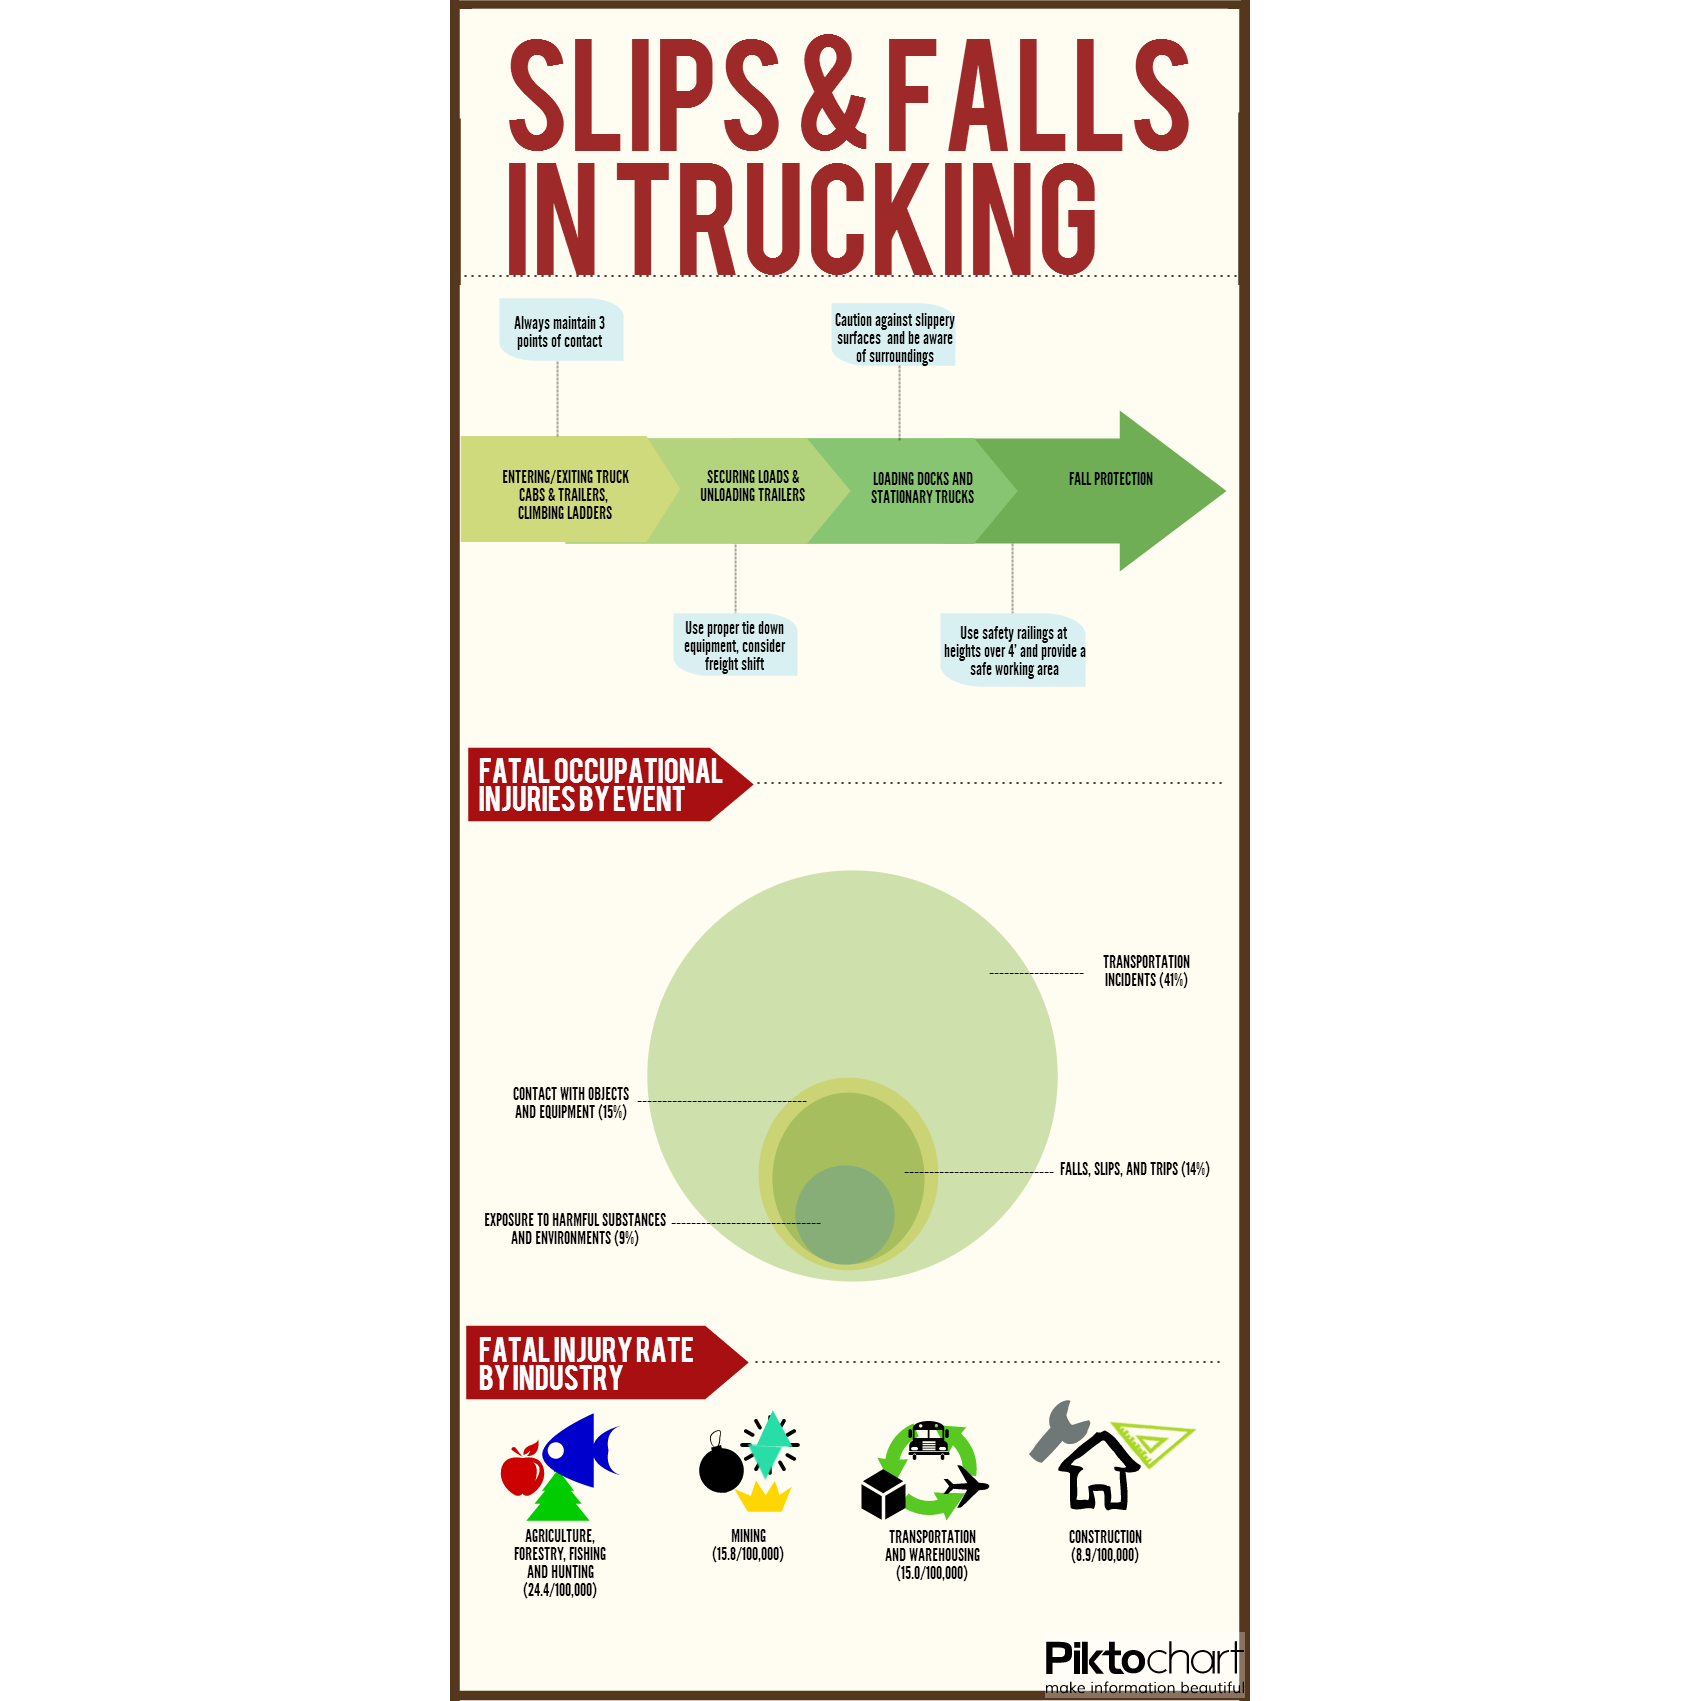 Slip & Fall Injuries in Truck Transportation [Infographic]